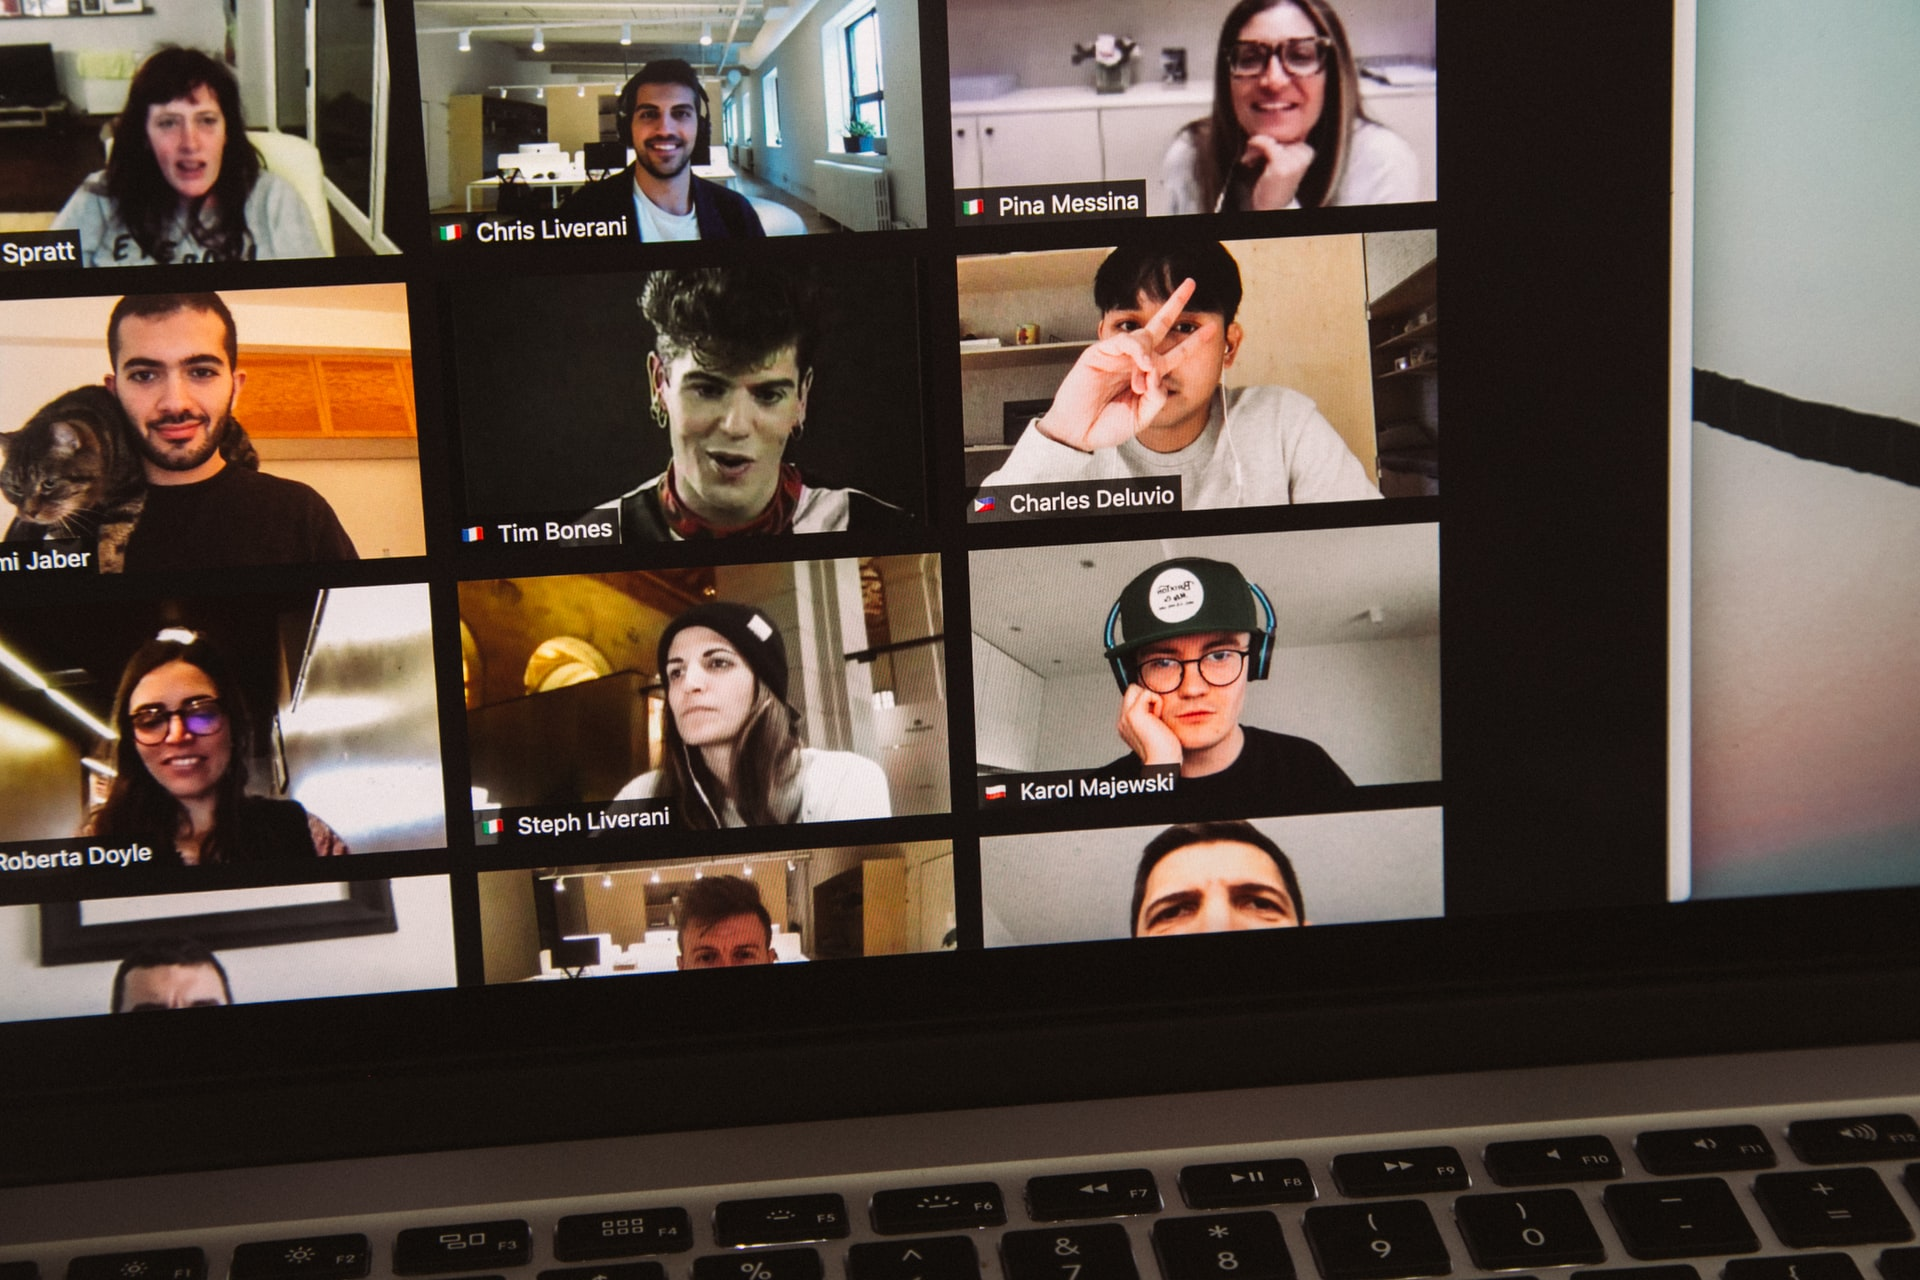 workers on a video call